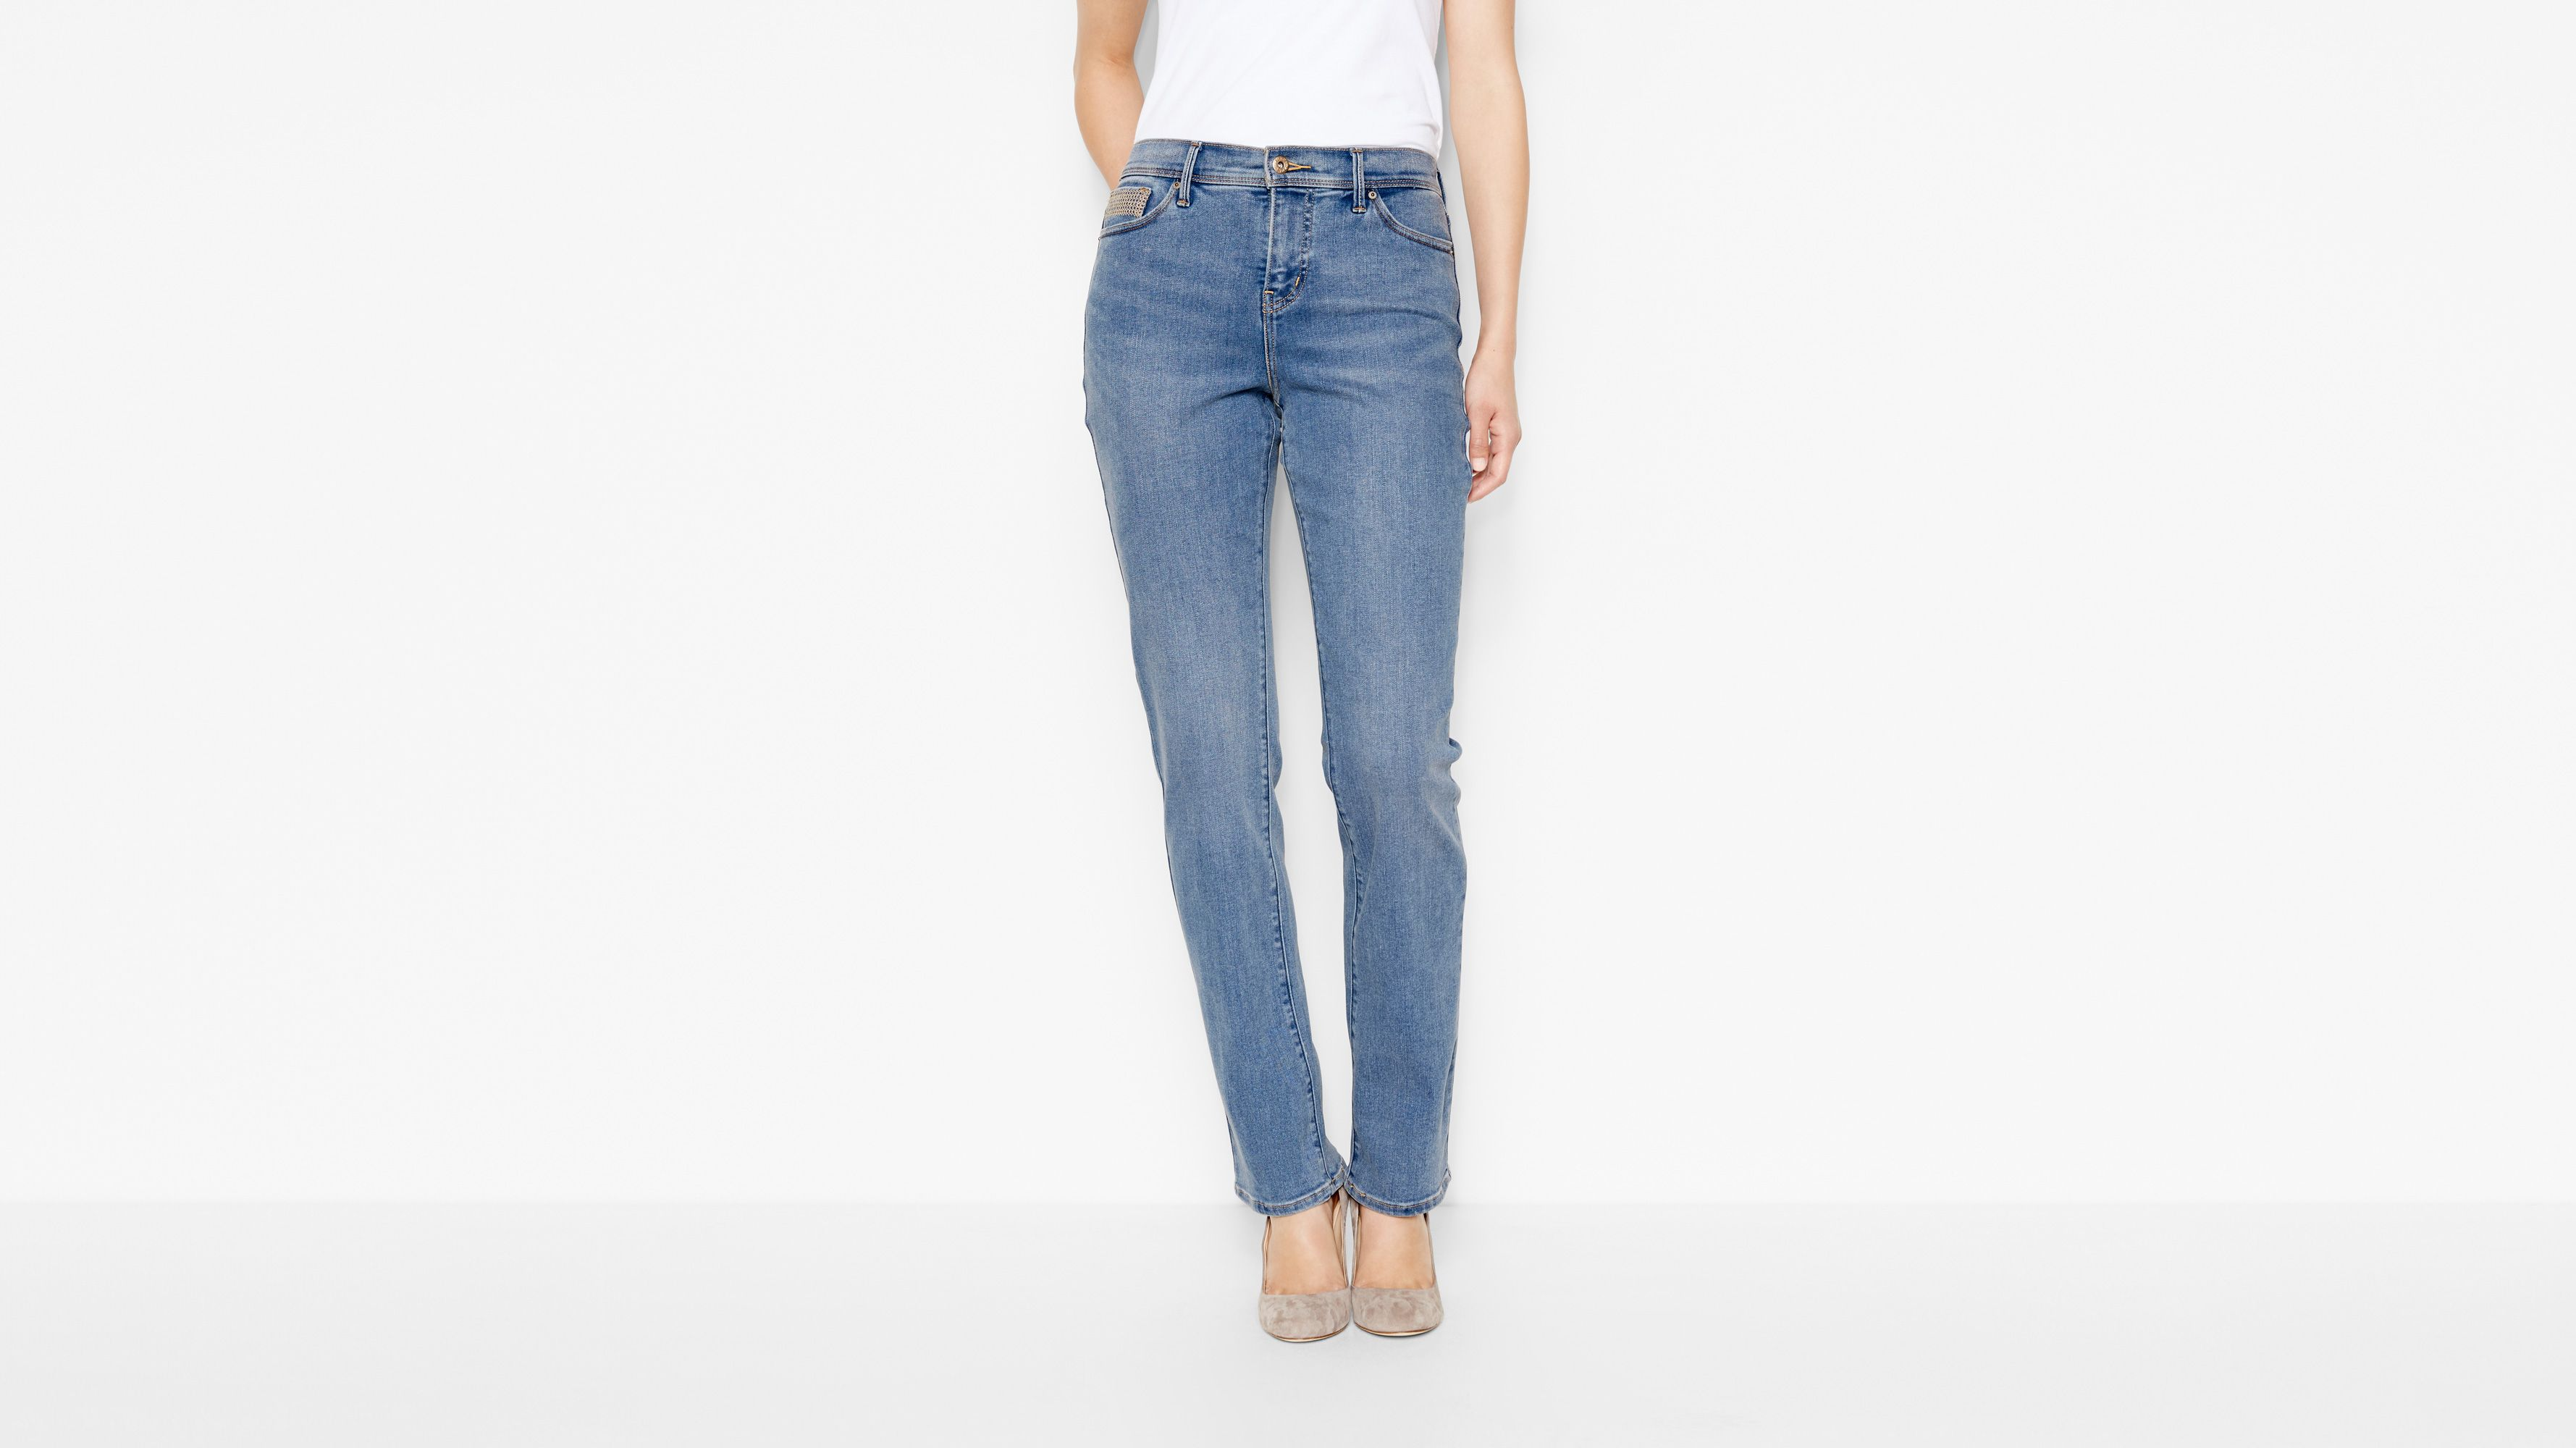 512™ Perfectly Slimming Straight Jeans - Western Light